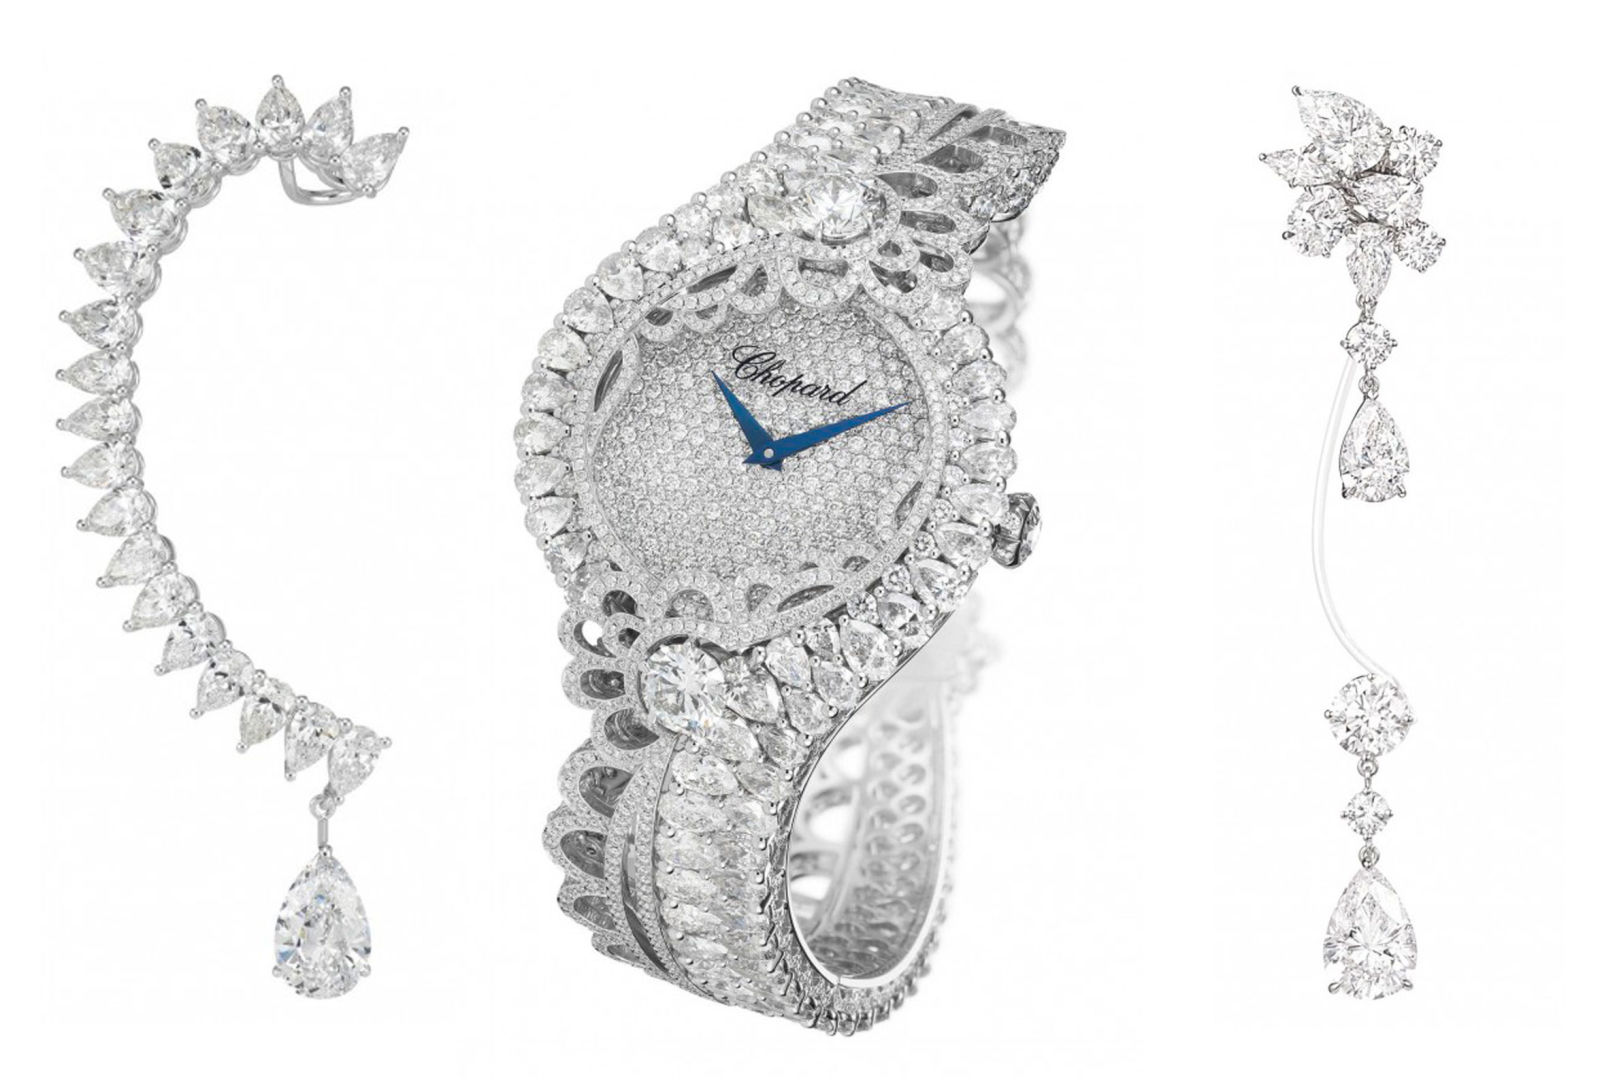 1491569551-syn-mar-1491566112-chopard-jewellery